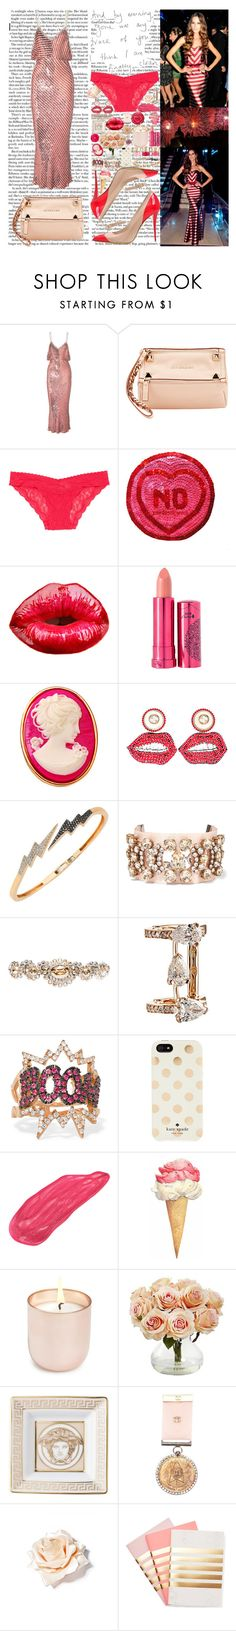 """""""It be hard to understand me cause my jaw keep lockin' I ain't even tryna talk cause my jaw keep lockin' She ain't tryna be a freak but them bands keep poppin' Still caught up in the streets And the feds still knockin'"""" by labelsoflove ❤ liked on Polyvore featuring Ashish, Balmain, Givenchy, Victoria's Secret, 100% Pure, Dollydagger, Gucci, Bee Goddess, Shourouk and Miu Miu"""